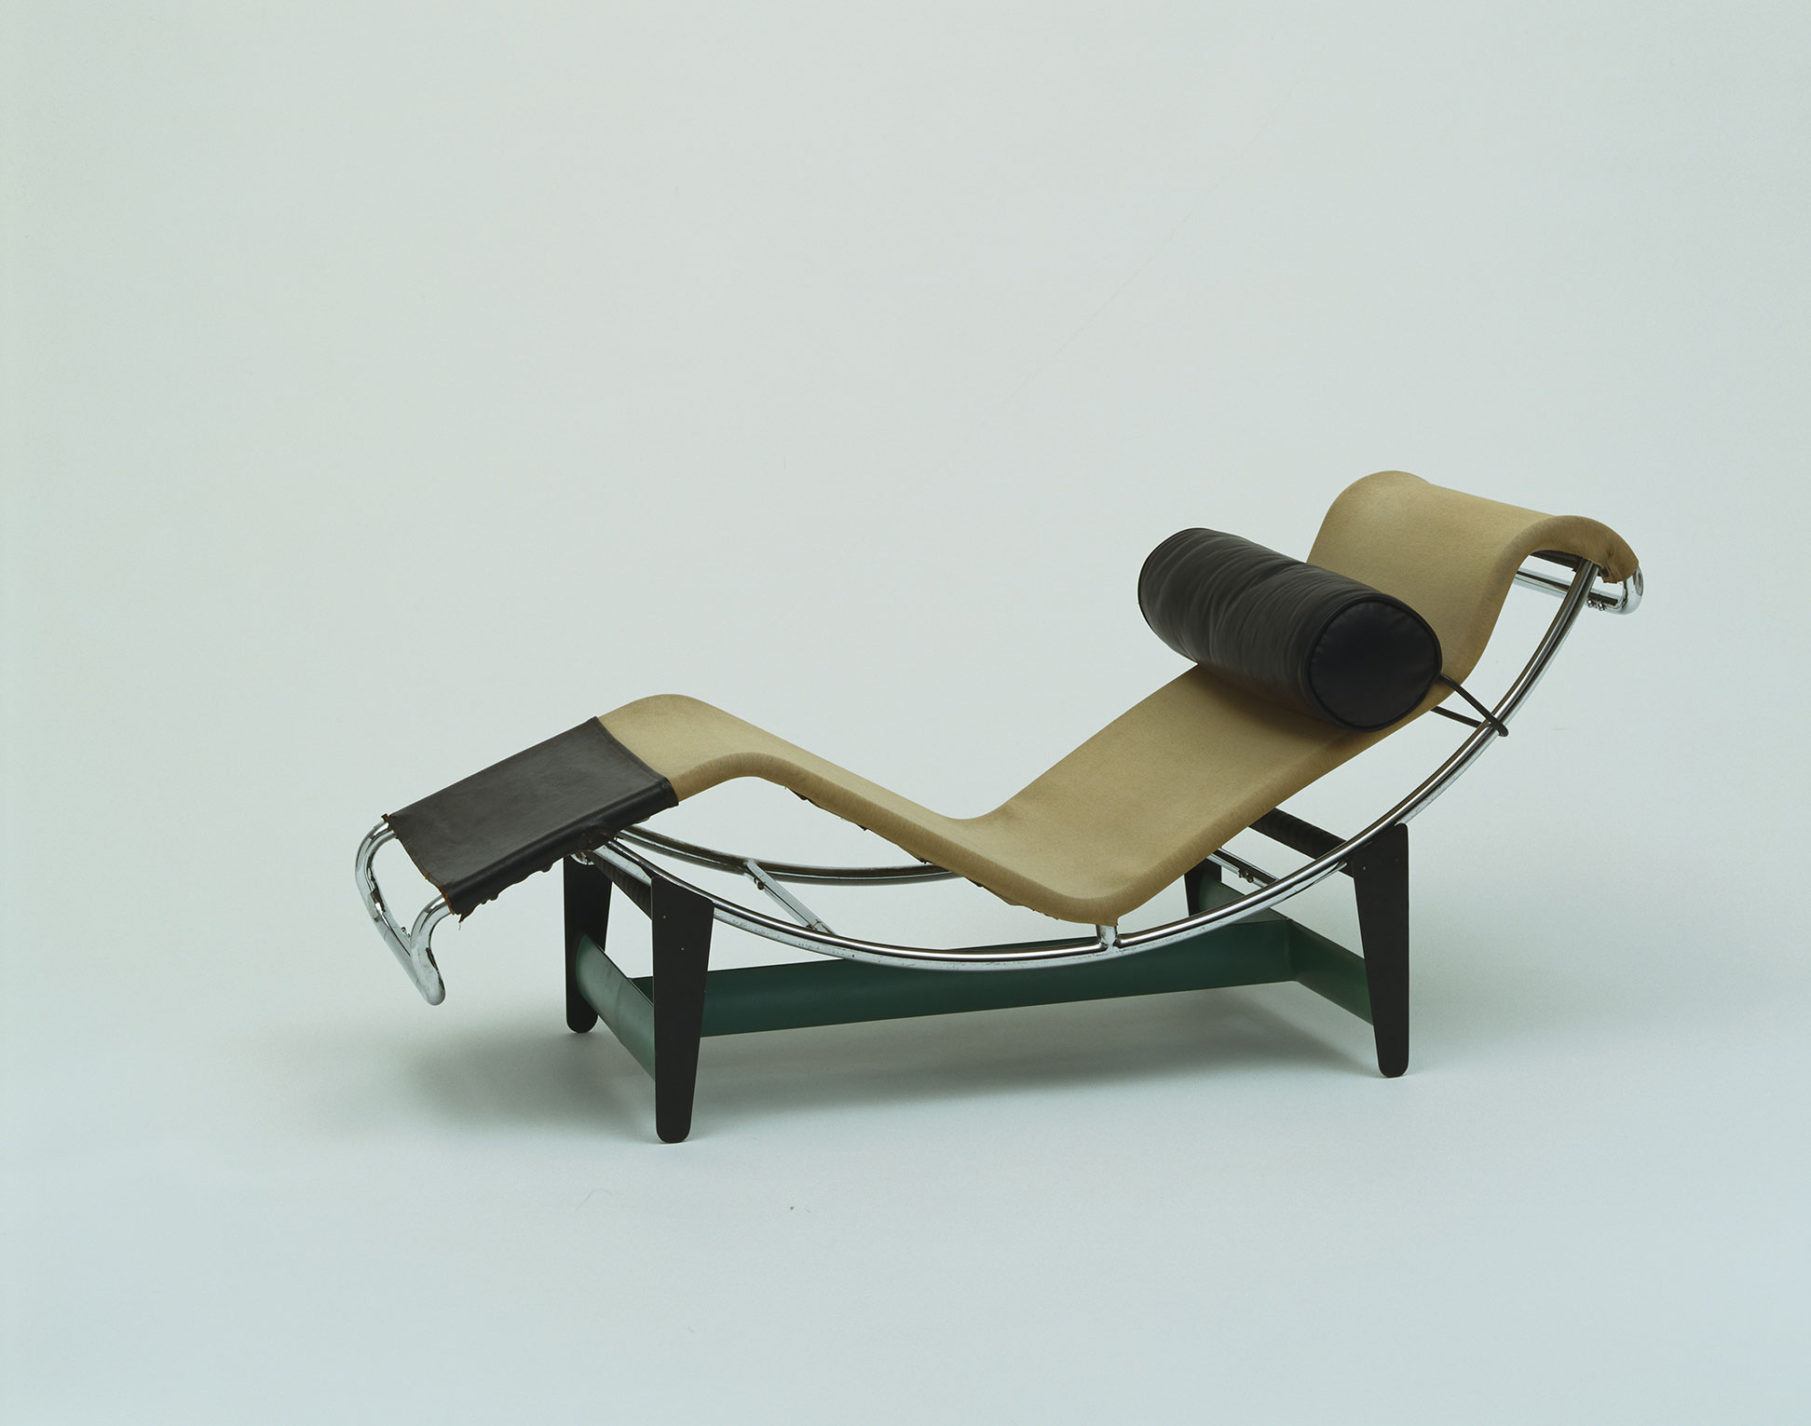 Tubular-steel framed chaise longue set on a painted metal frame with tan and black upholstery and a cylindrical black pillow.